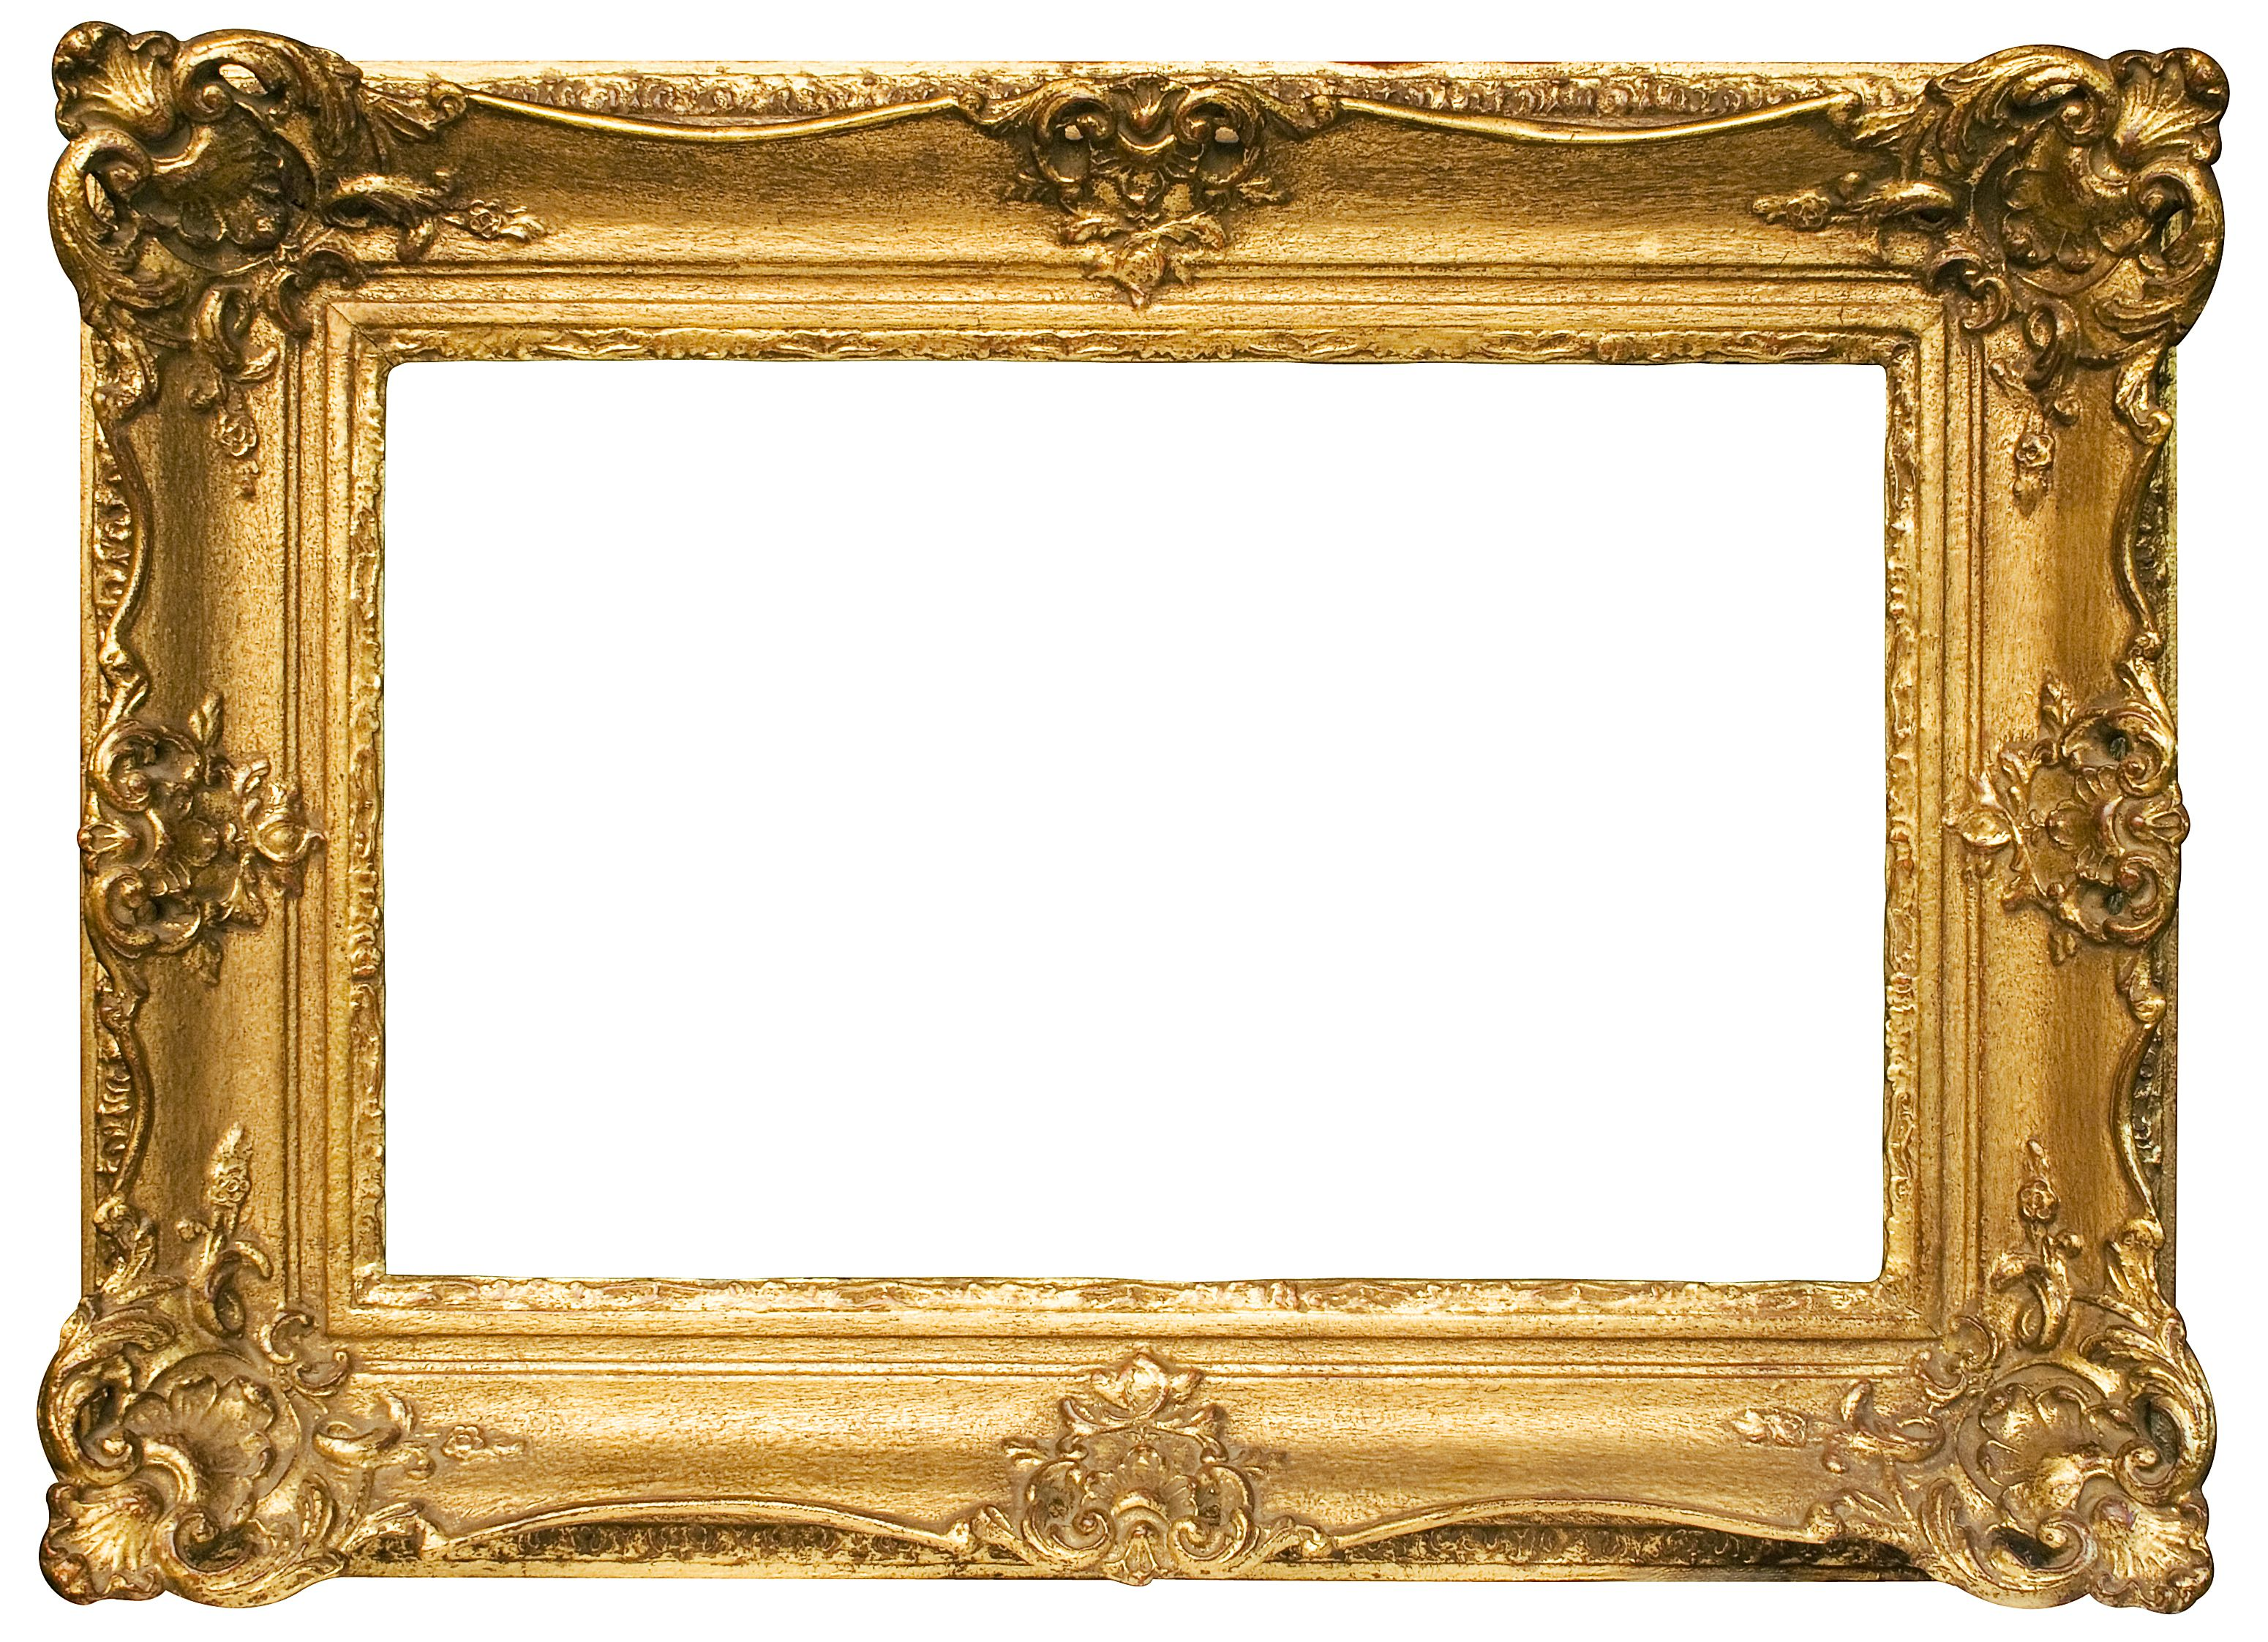 Gold Picture Frames: Old Fashioned Gold Frame, ornate gold frame.